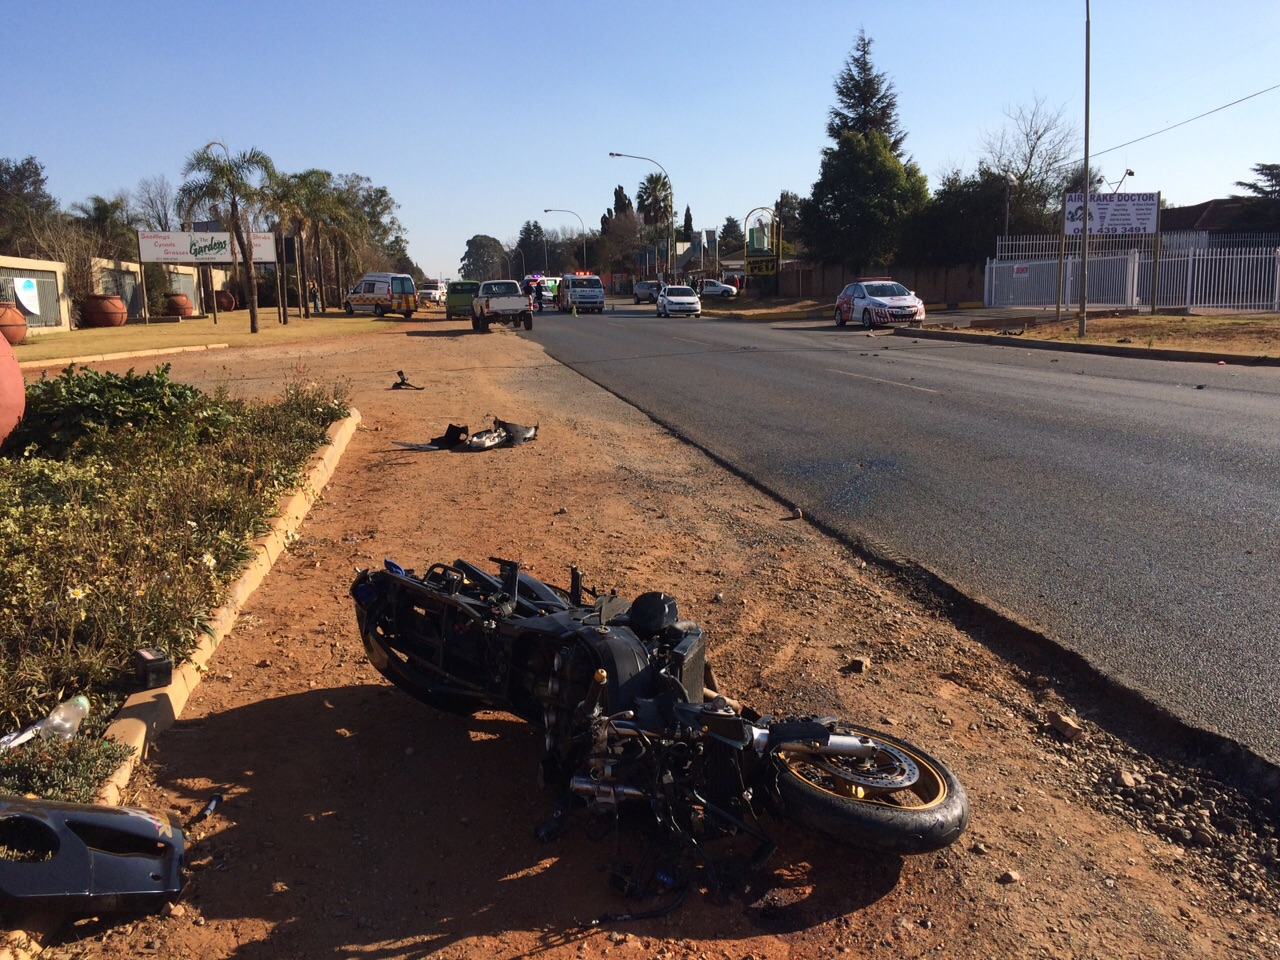 Man dies in motorcycle crash in Kempton Park